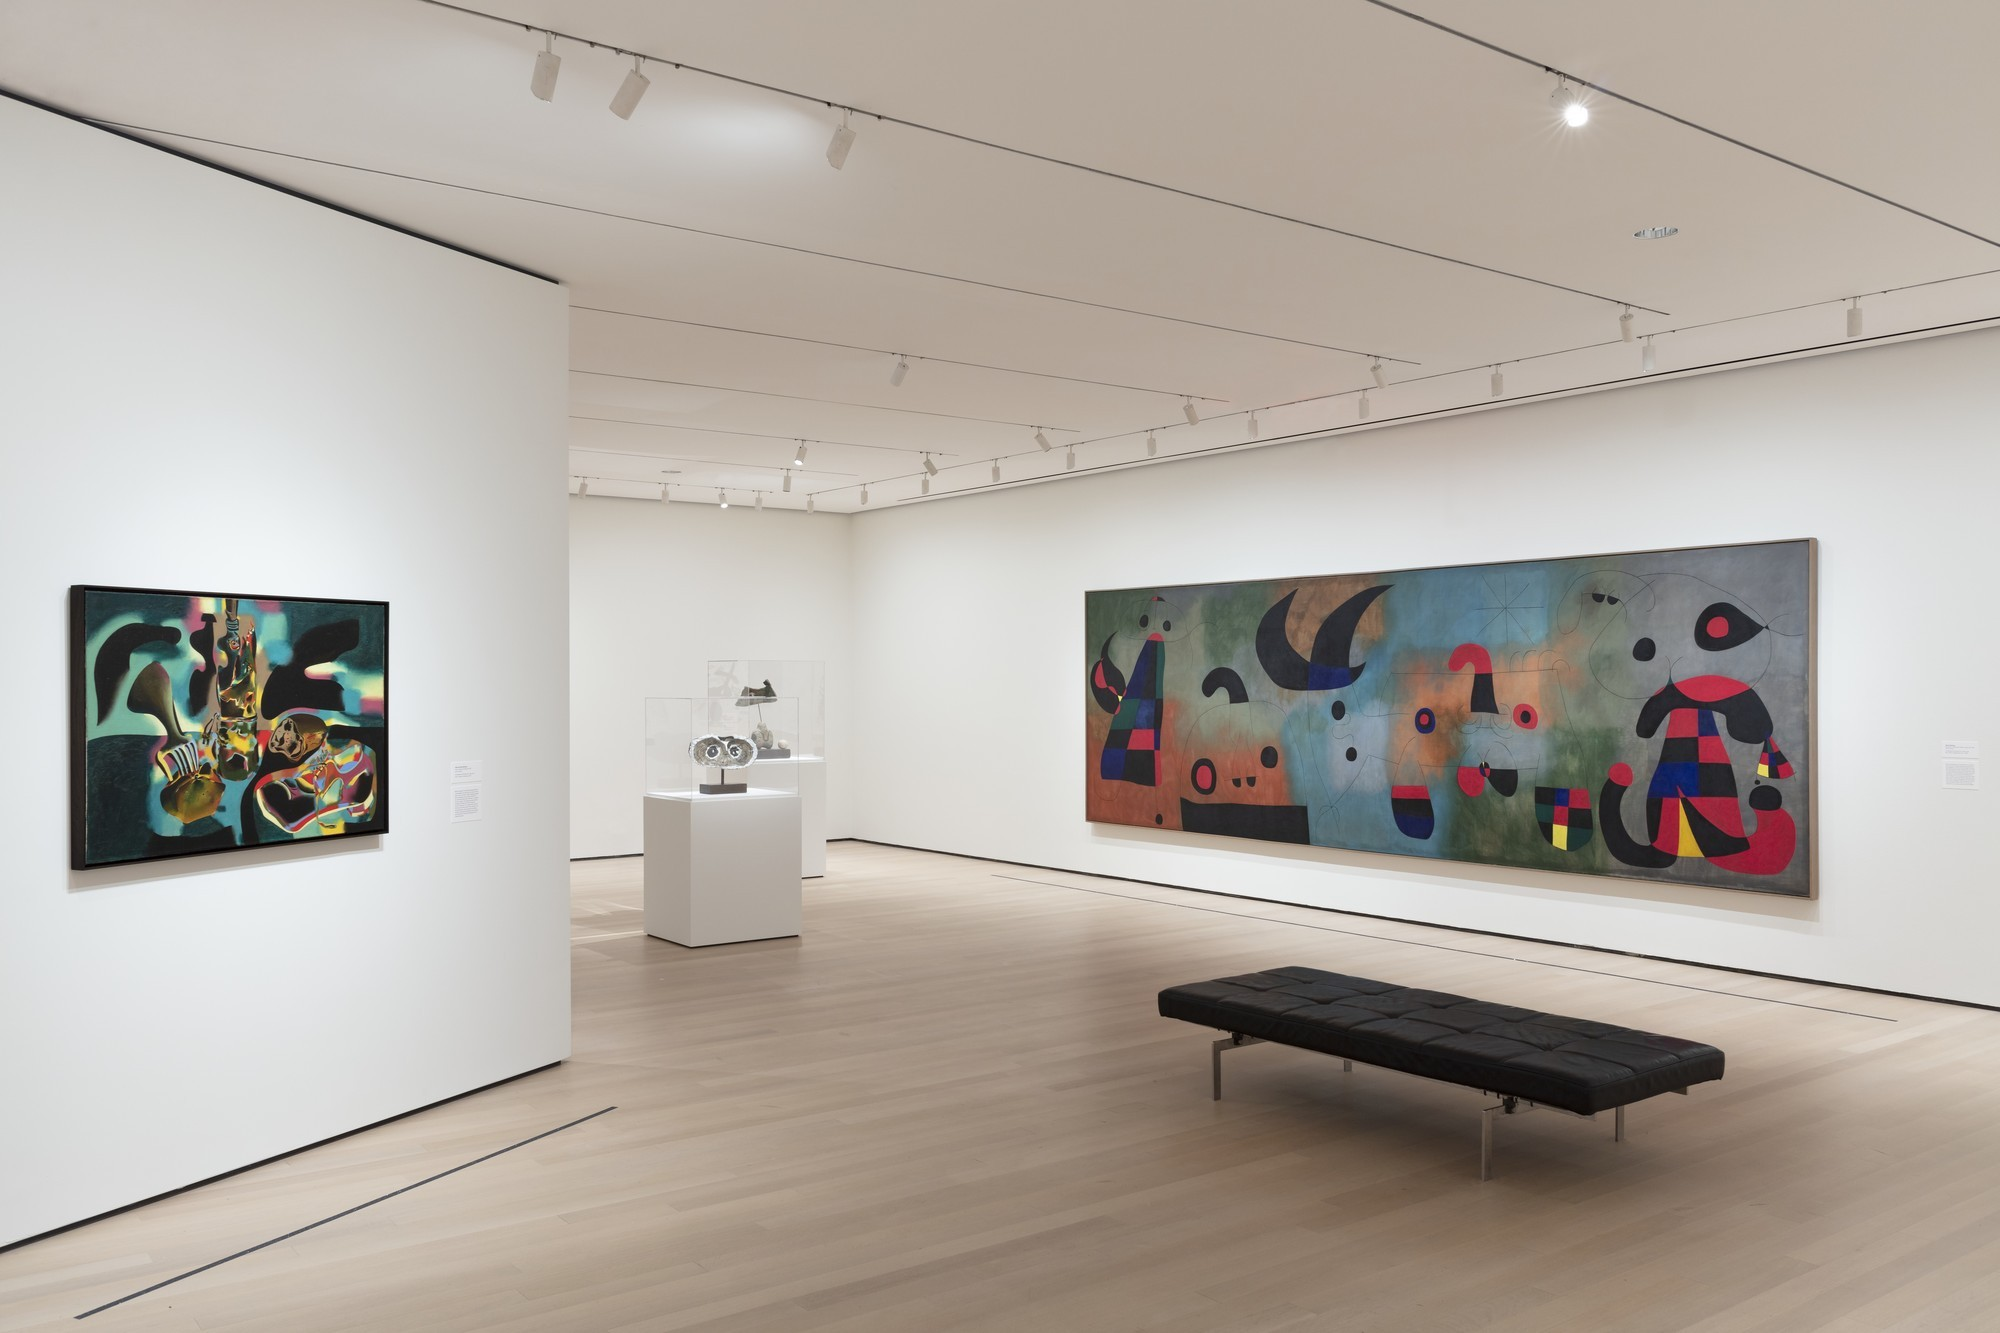 """Installation view of the exhibition """"Joan Miró: Birth of the World"""". Photograph by Denis Doorly. 2019"""